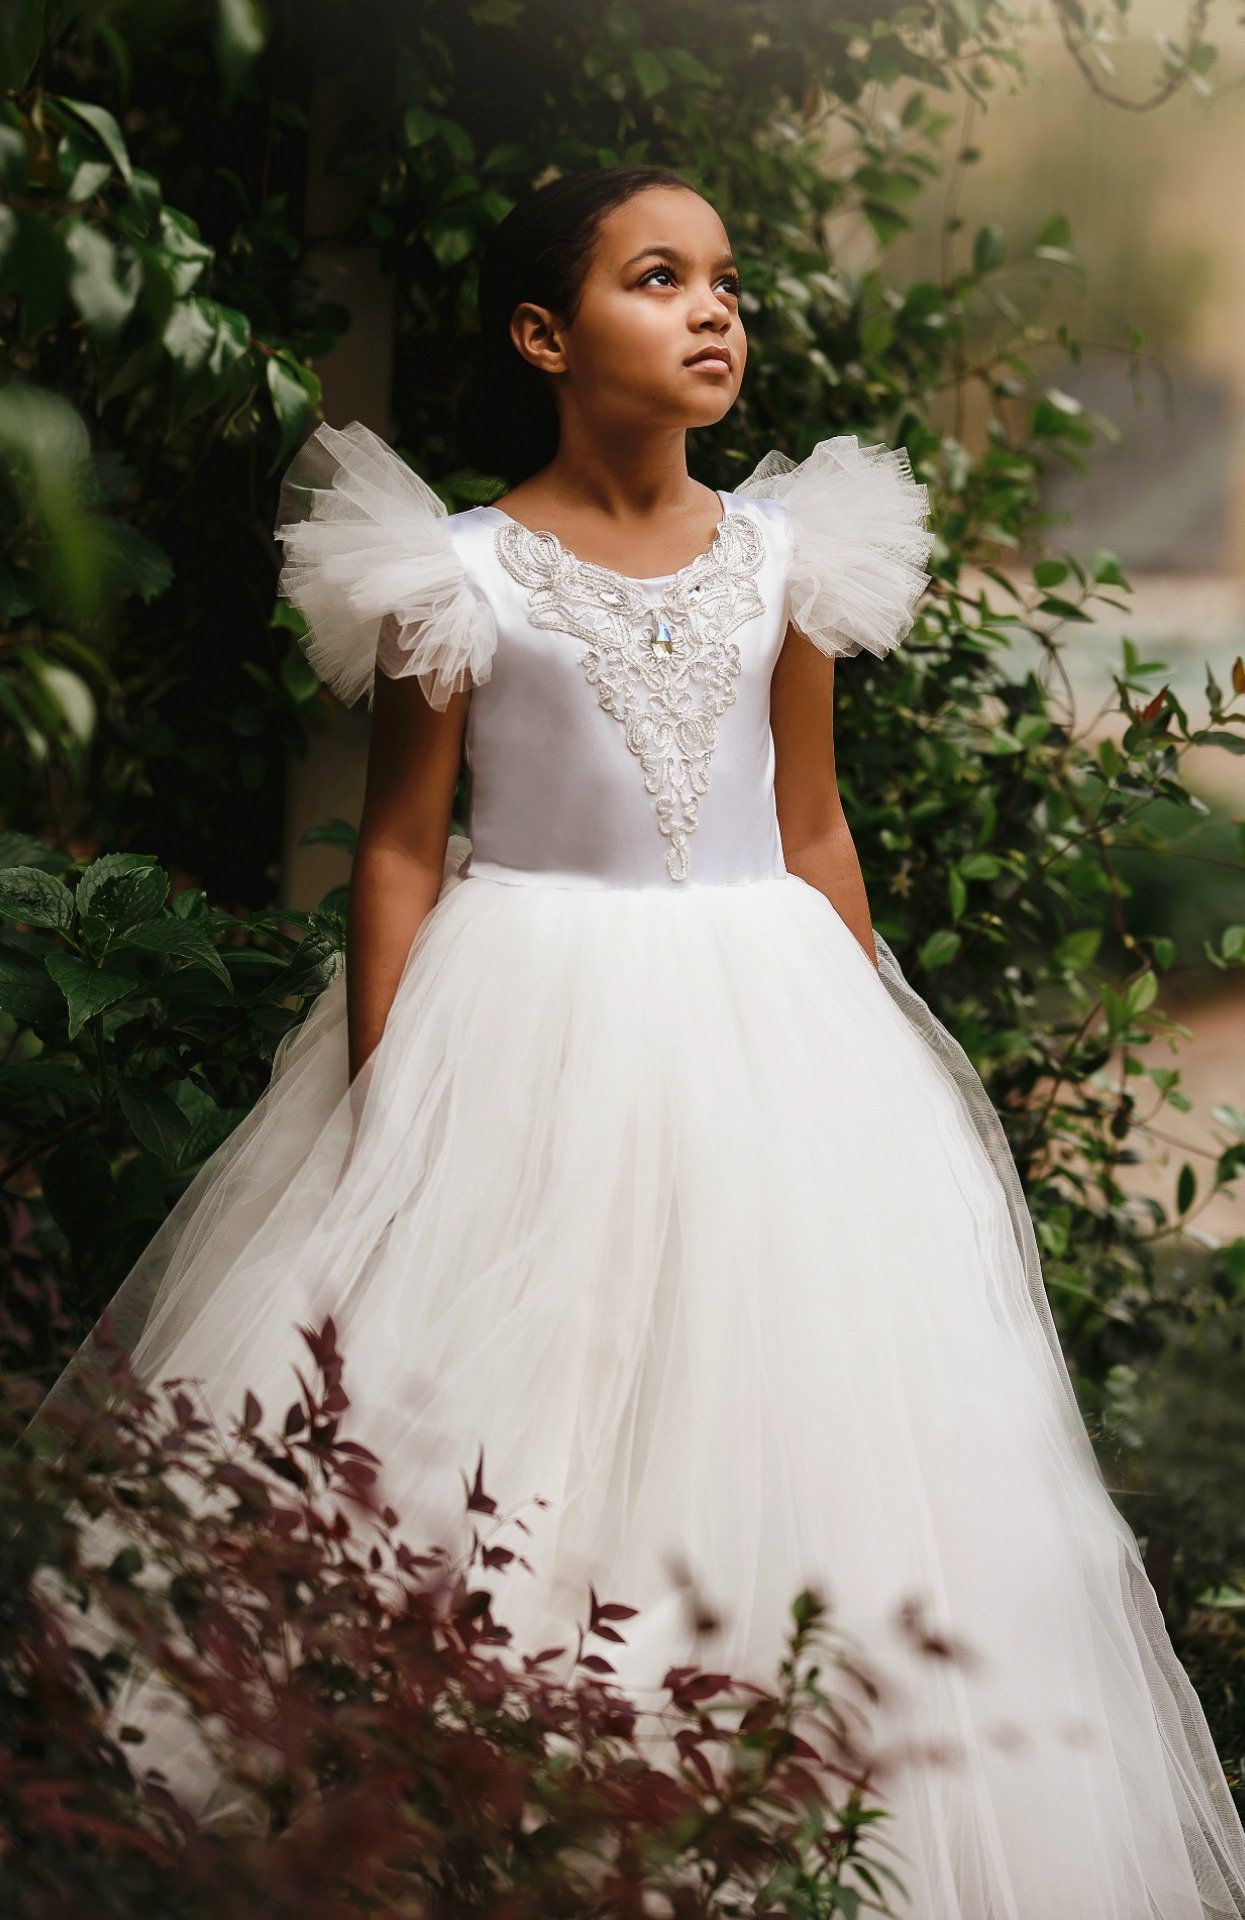 Couture Ivory Flower Dress Perfect For Fairytale Wedding Or Disney S First Communion Confirmation Cinderellawedding